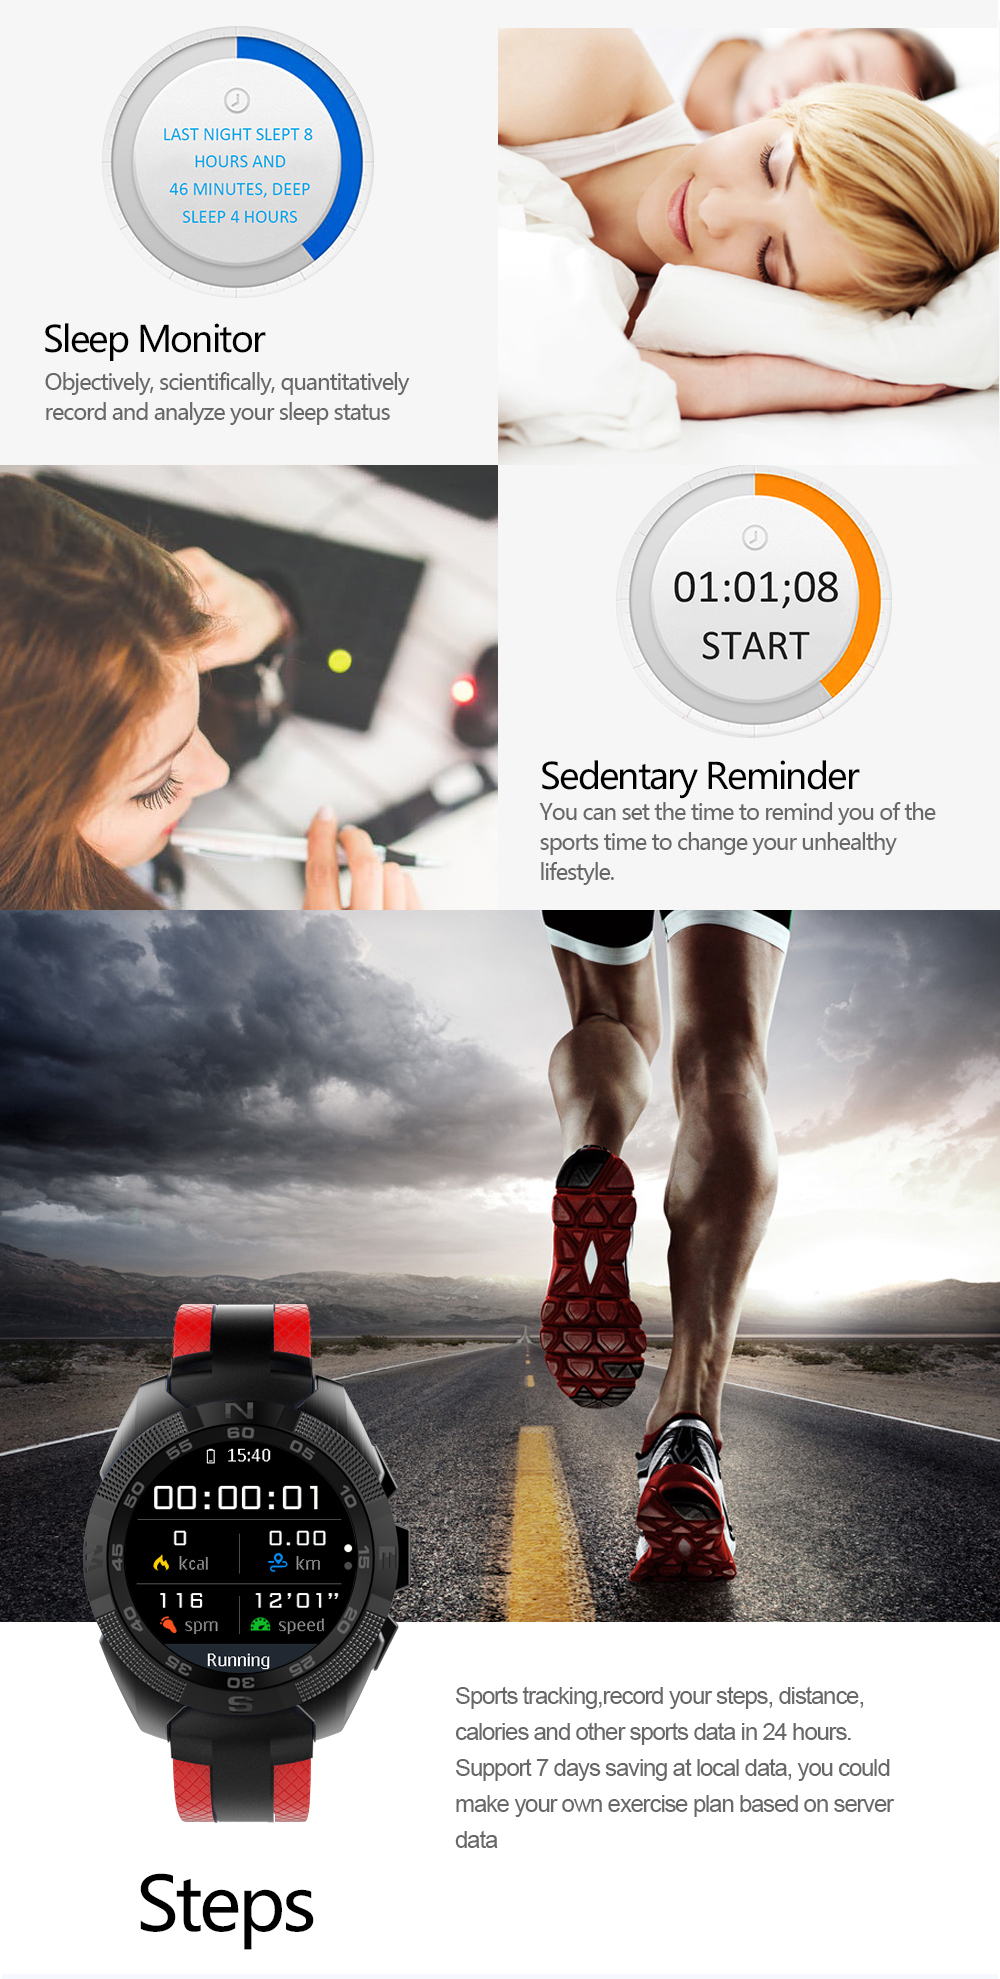 images/wholesale-electronics-2019/Bluetooth-Smartwatch-105mm-Ultra-Thin-Dial-Heart-rate-Monitor-Pedometer-154-inch-displaySilver-plusbuyer_95.jpg